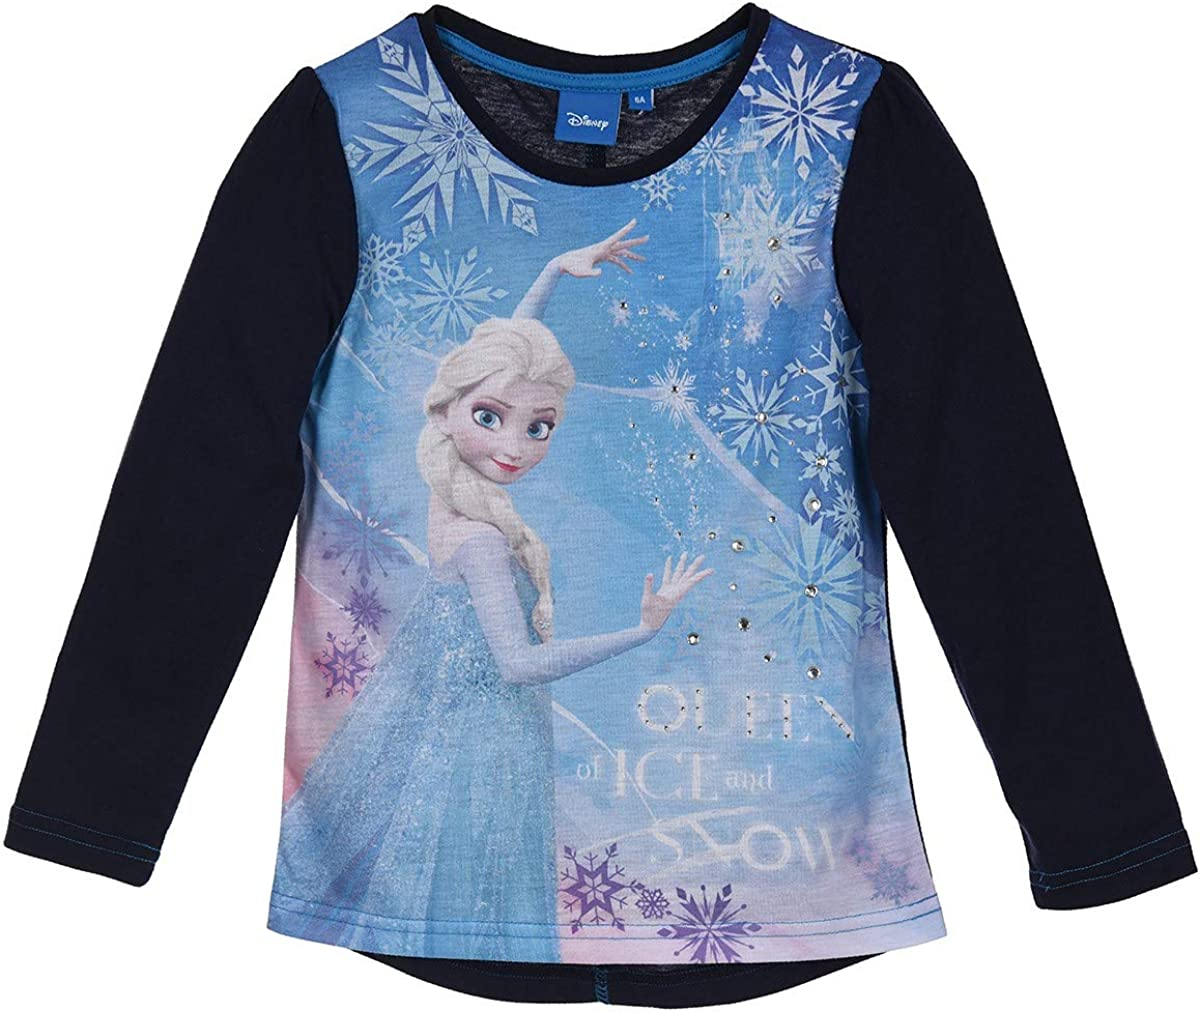 Officially Licensed Disney Frozen Girls Long Sleeve T-Shirt (Blue, 4 Years)